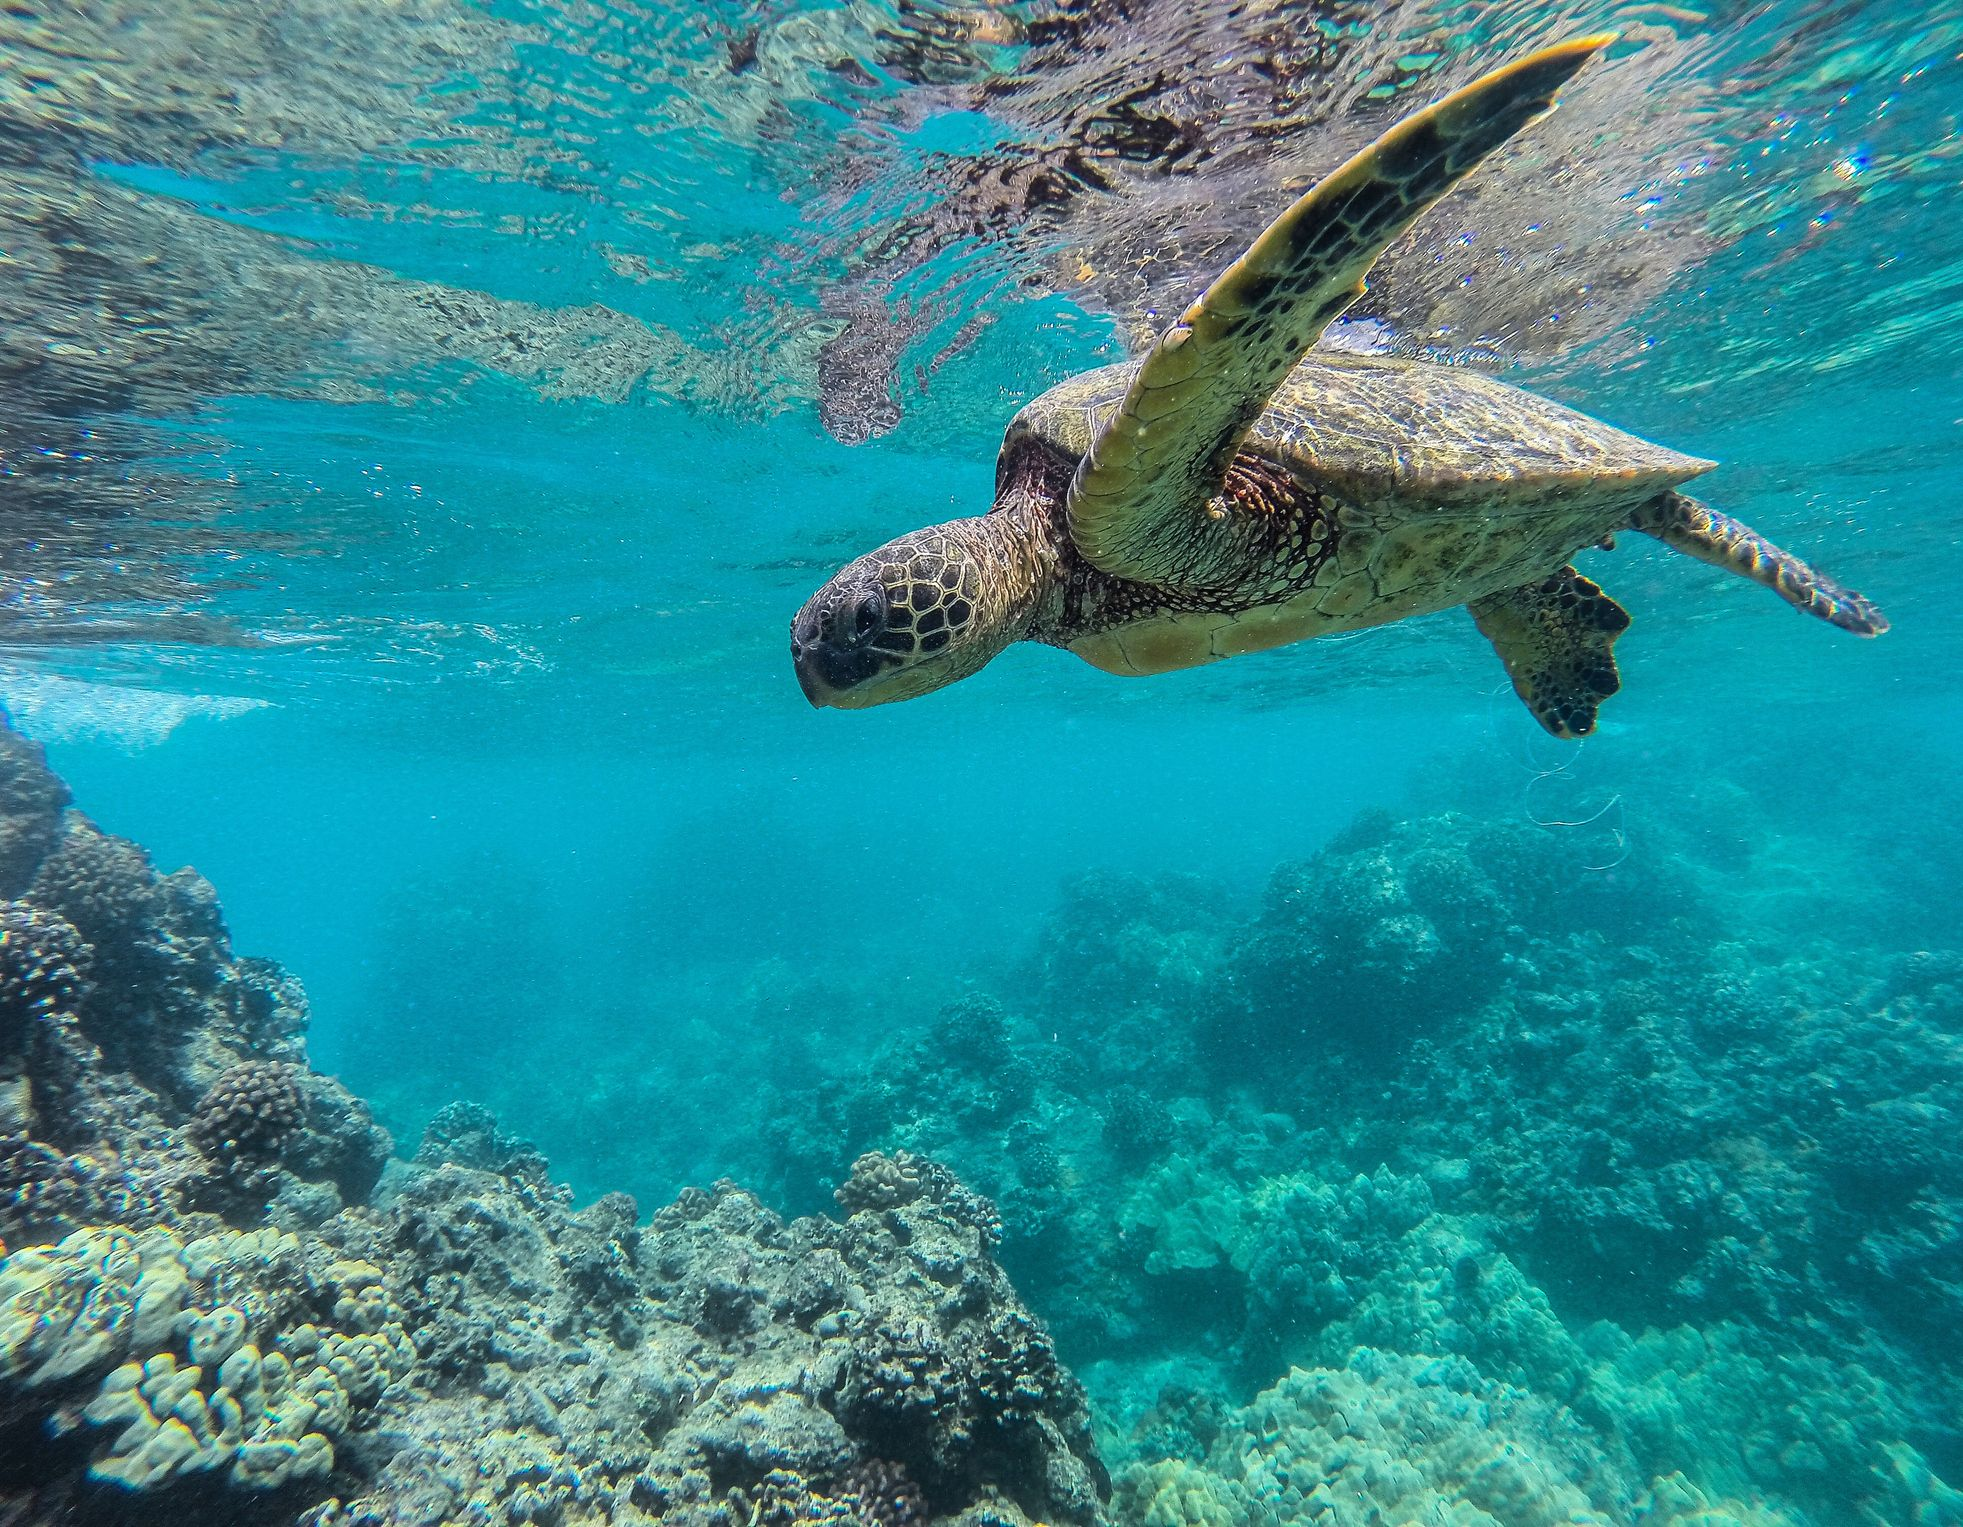 Green sea turtle of Maui